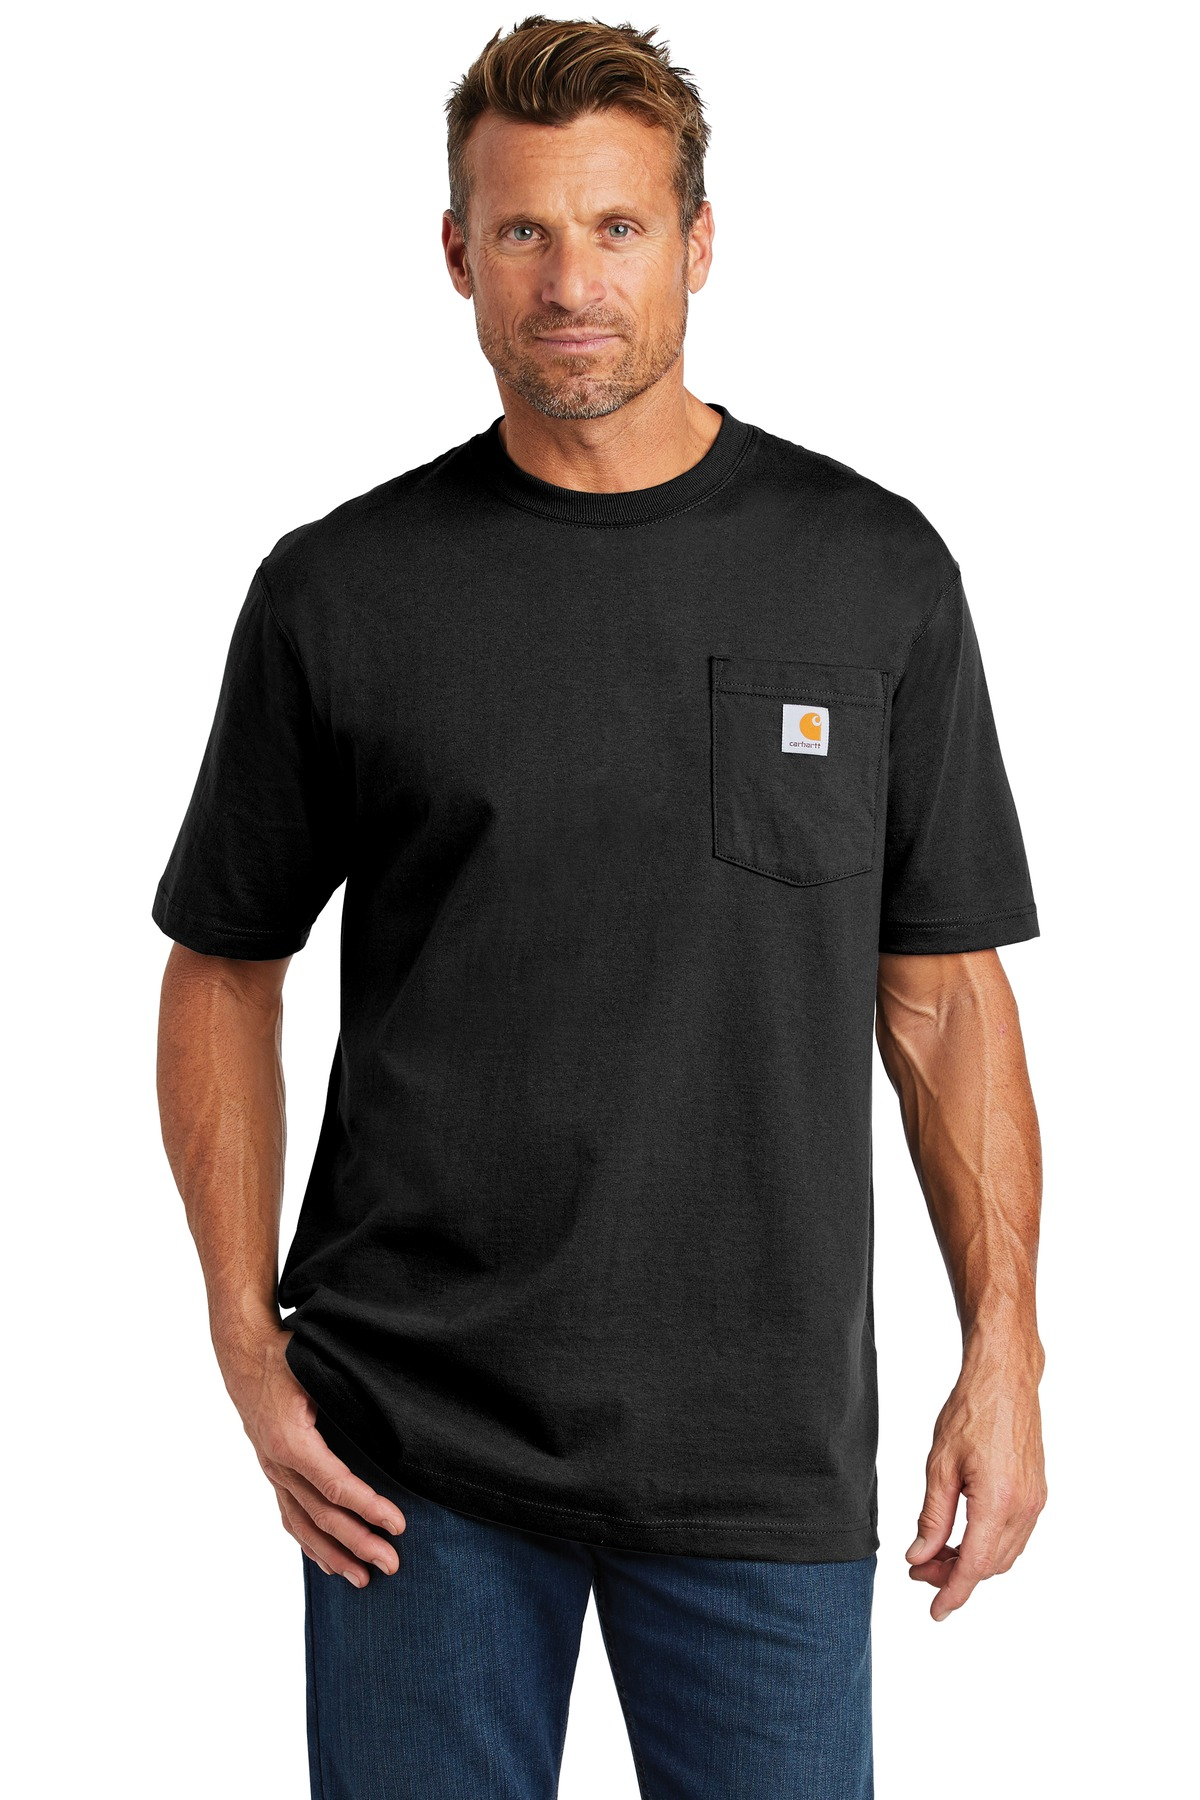 Carhartt  ®  Workwear Pocket Short Sleeve T-Shirt. CTK87 - Black